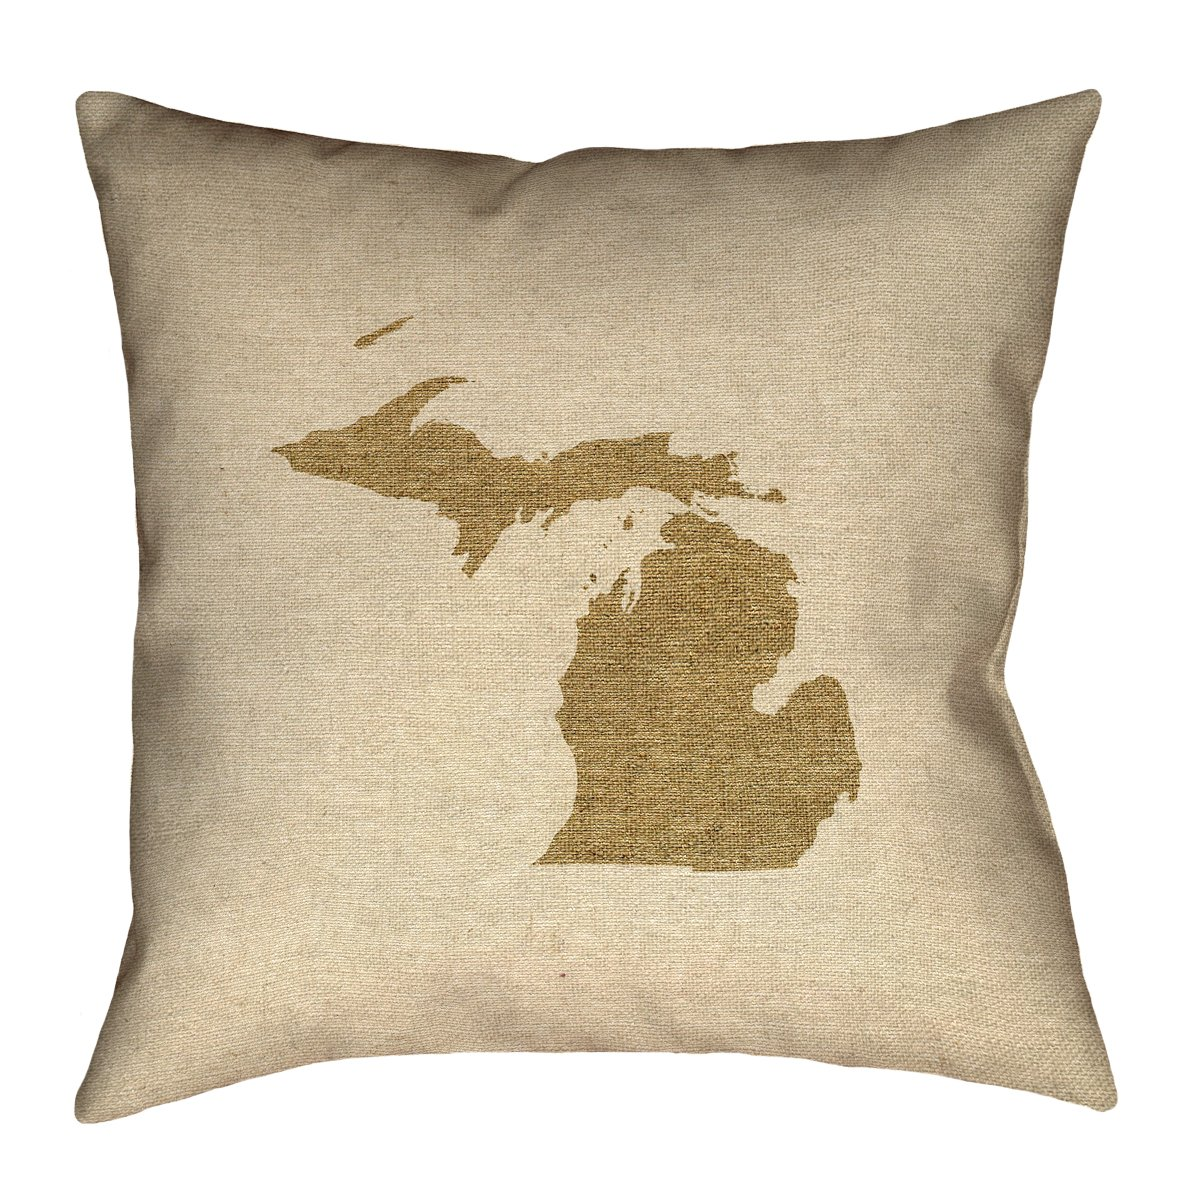 ArtVerse Katelyn Smith 20 x 20 Cotton Twill Double Sided Print with Concealed Zipper /& Insert Michigan Canvas Pillow